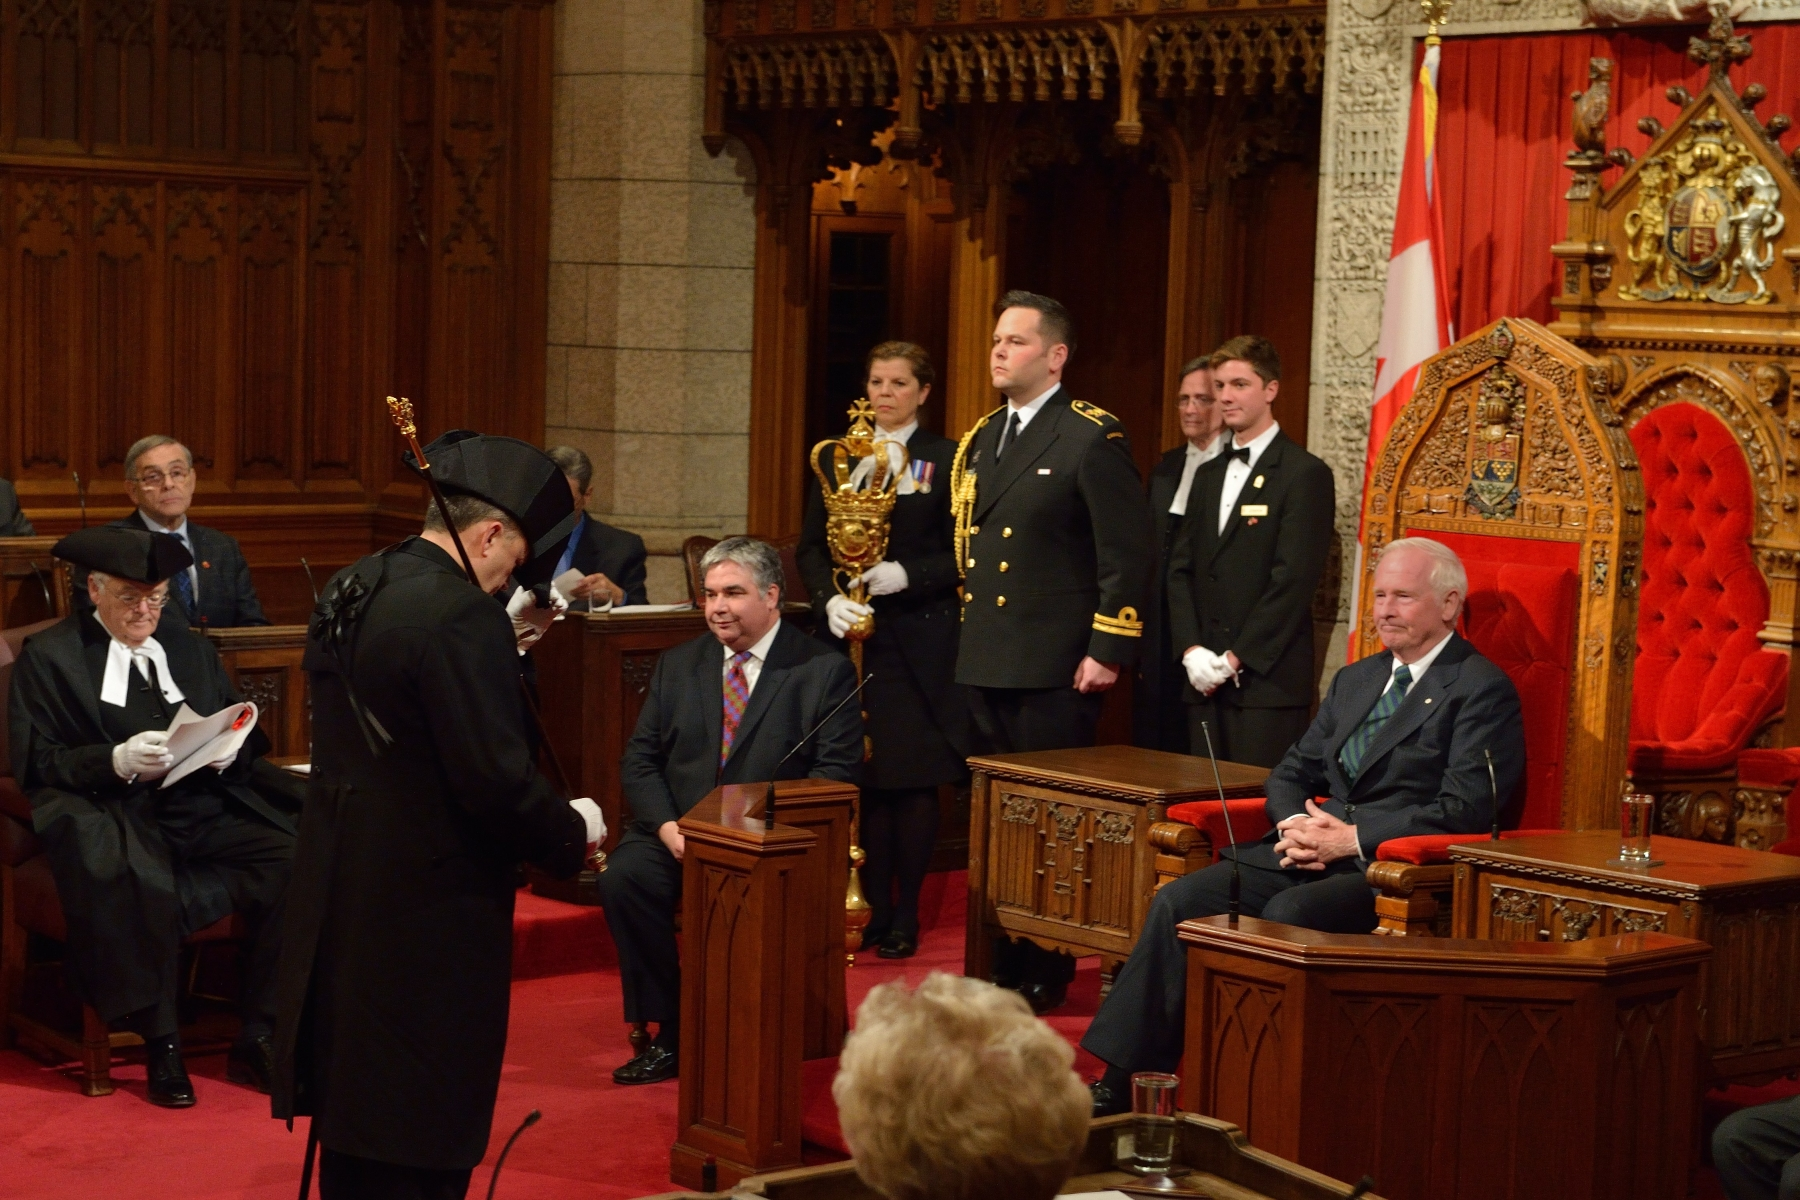 Royal Assent can be granted either at a ceremony in the Senate chamber held in the presence of both Houses, or by written declaration that is announced in both Houses.